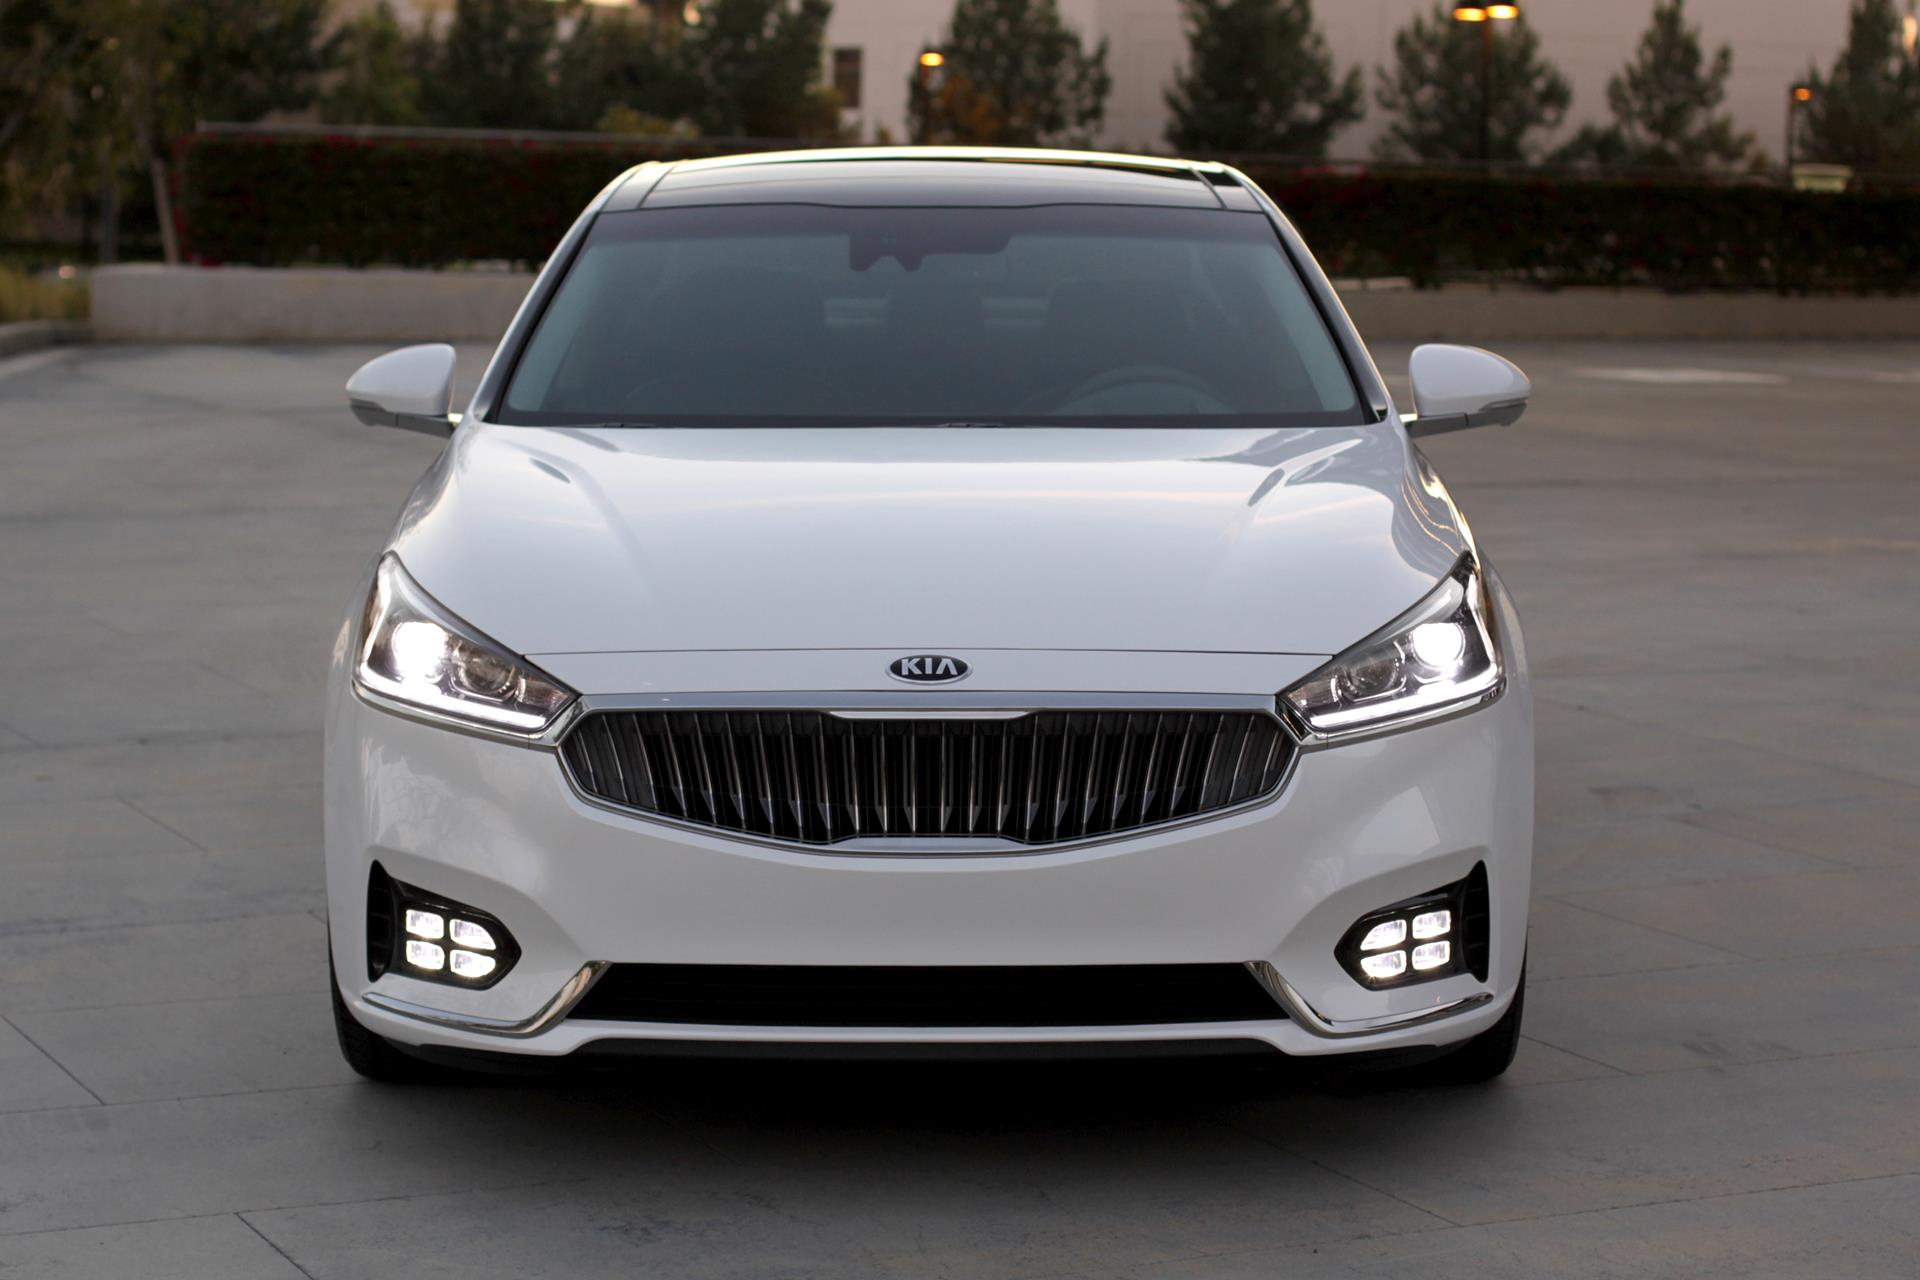 Kia Cadenza 2011 >> 2017 Kia Cadenza Technical Specifications and Data. Engine, Dimensions and Mechanical details.